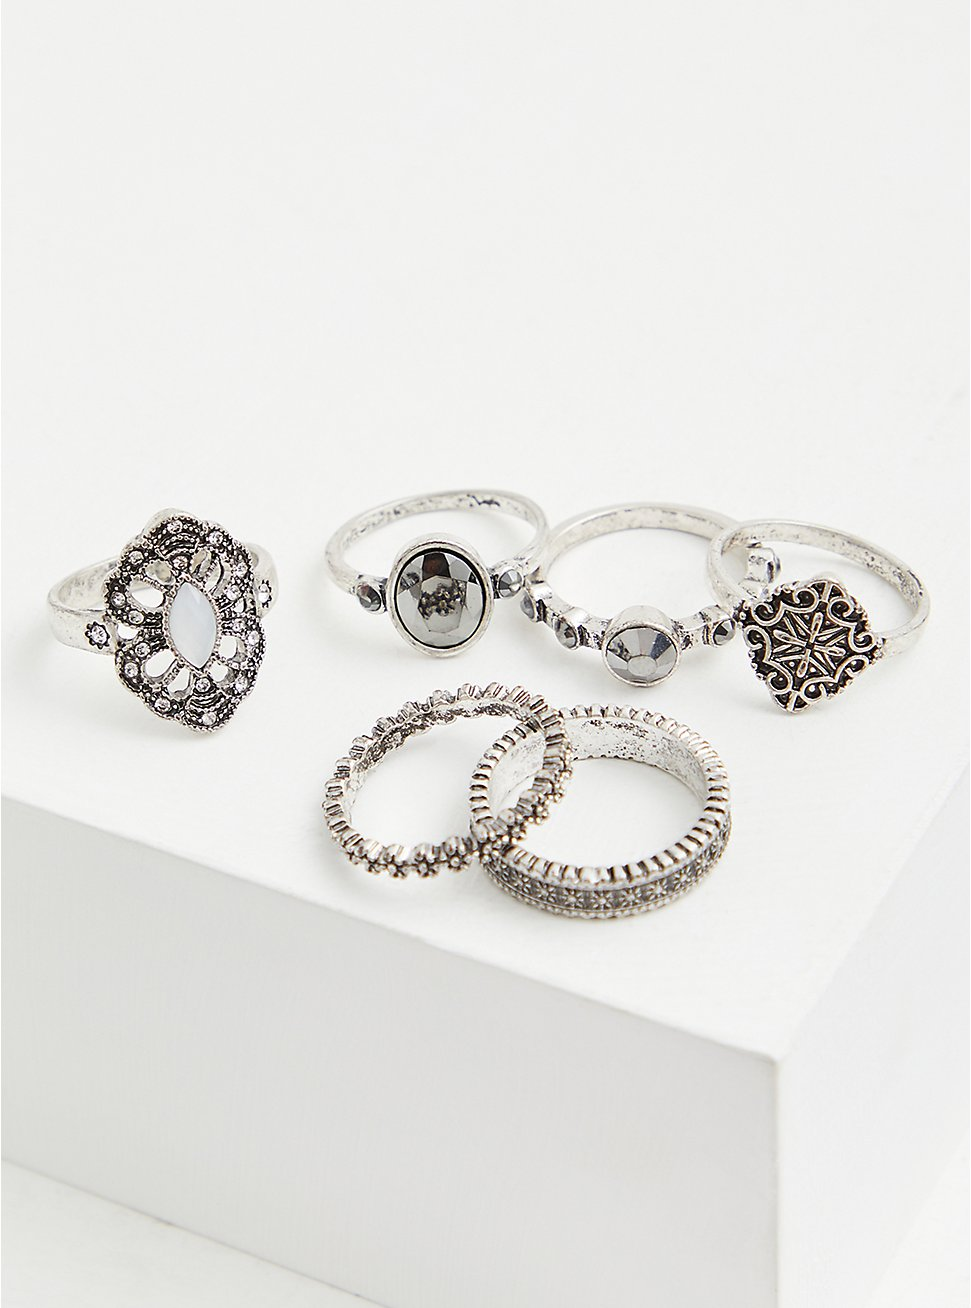 Burnished Silver-Tone Faux Stone Ring Set - Set of 6, SILVER, hi-res